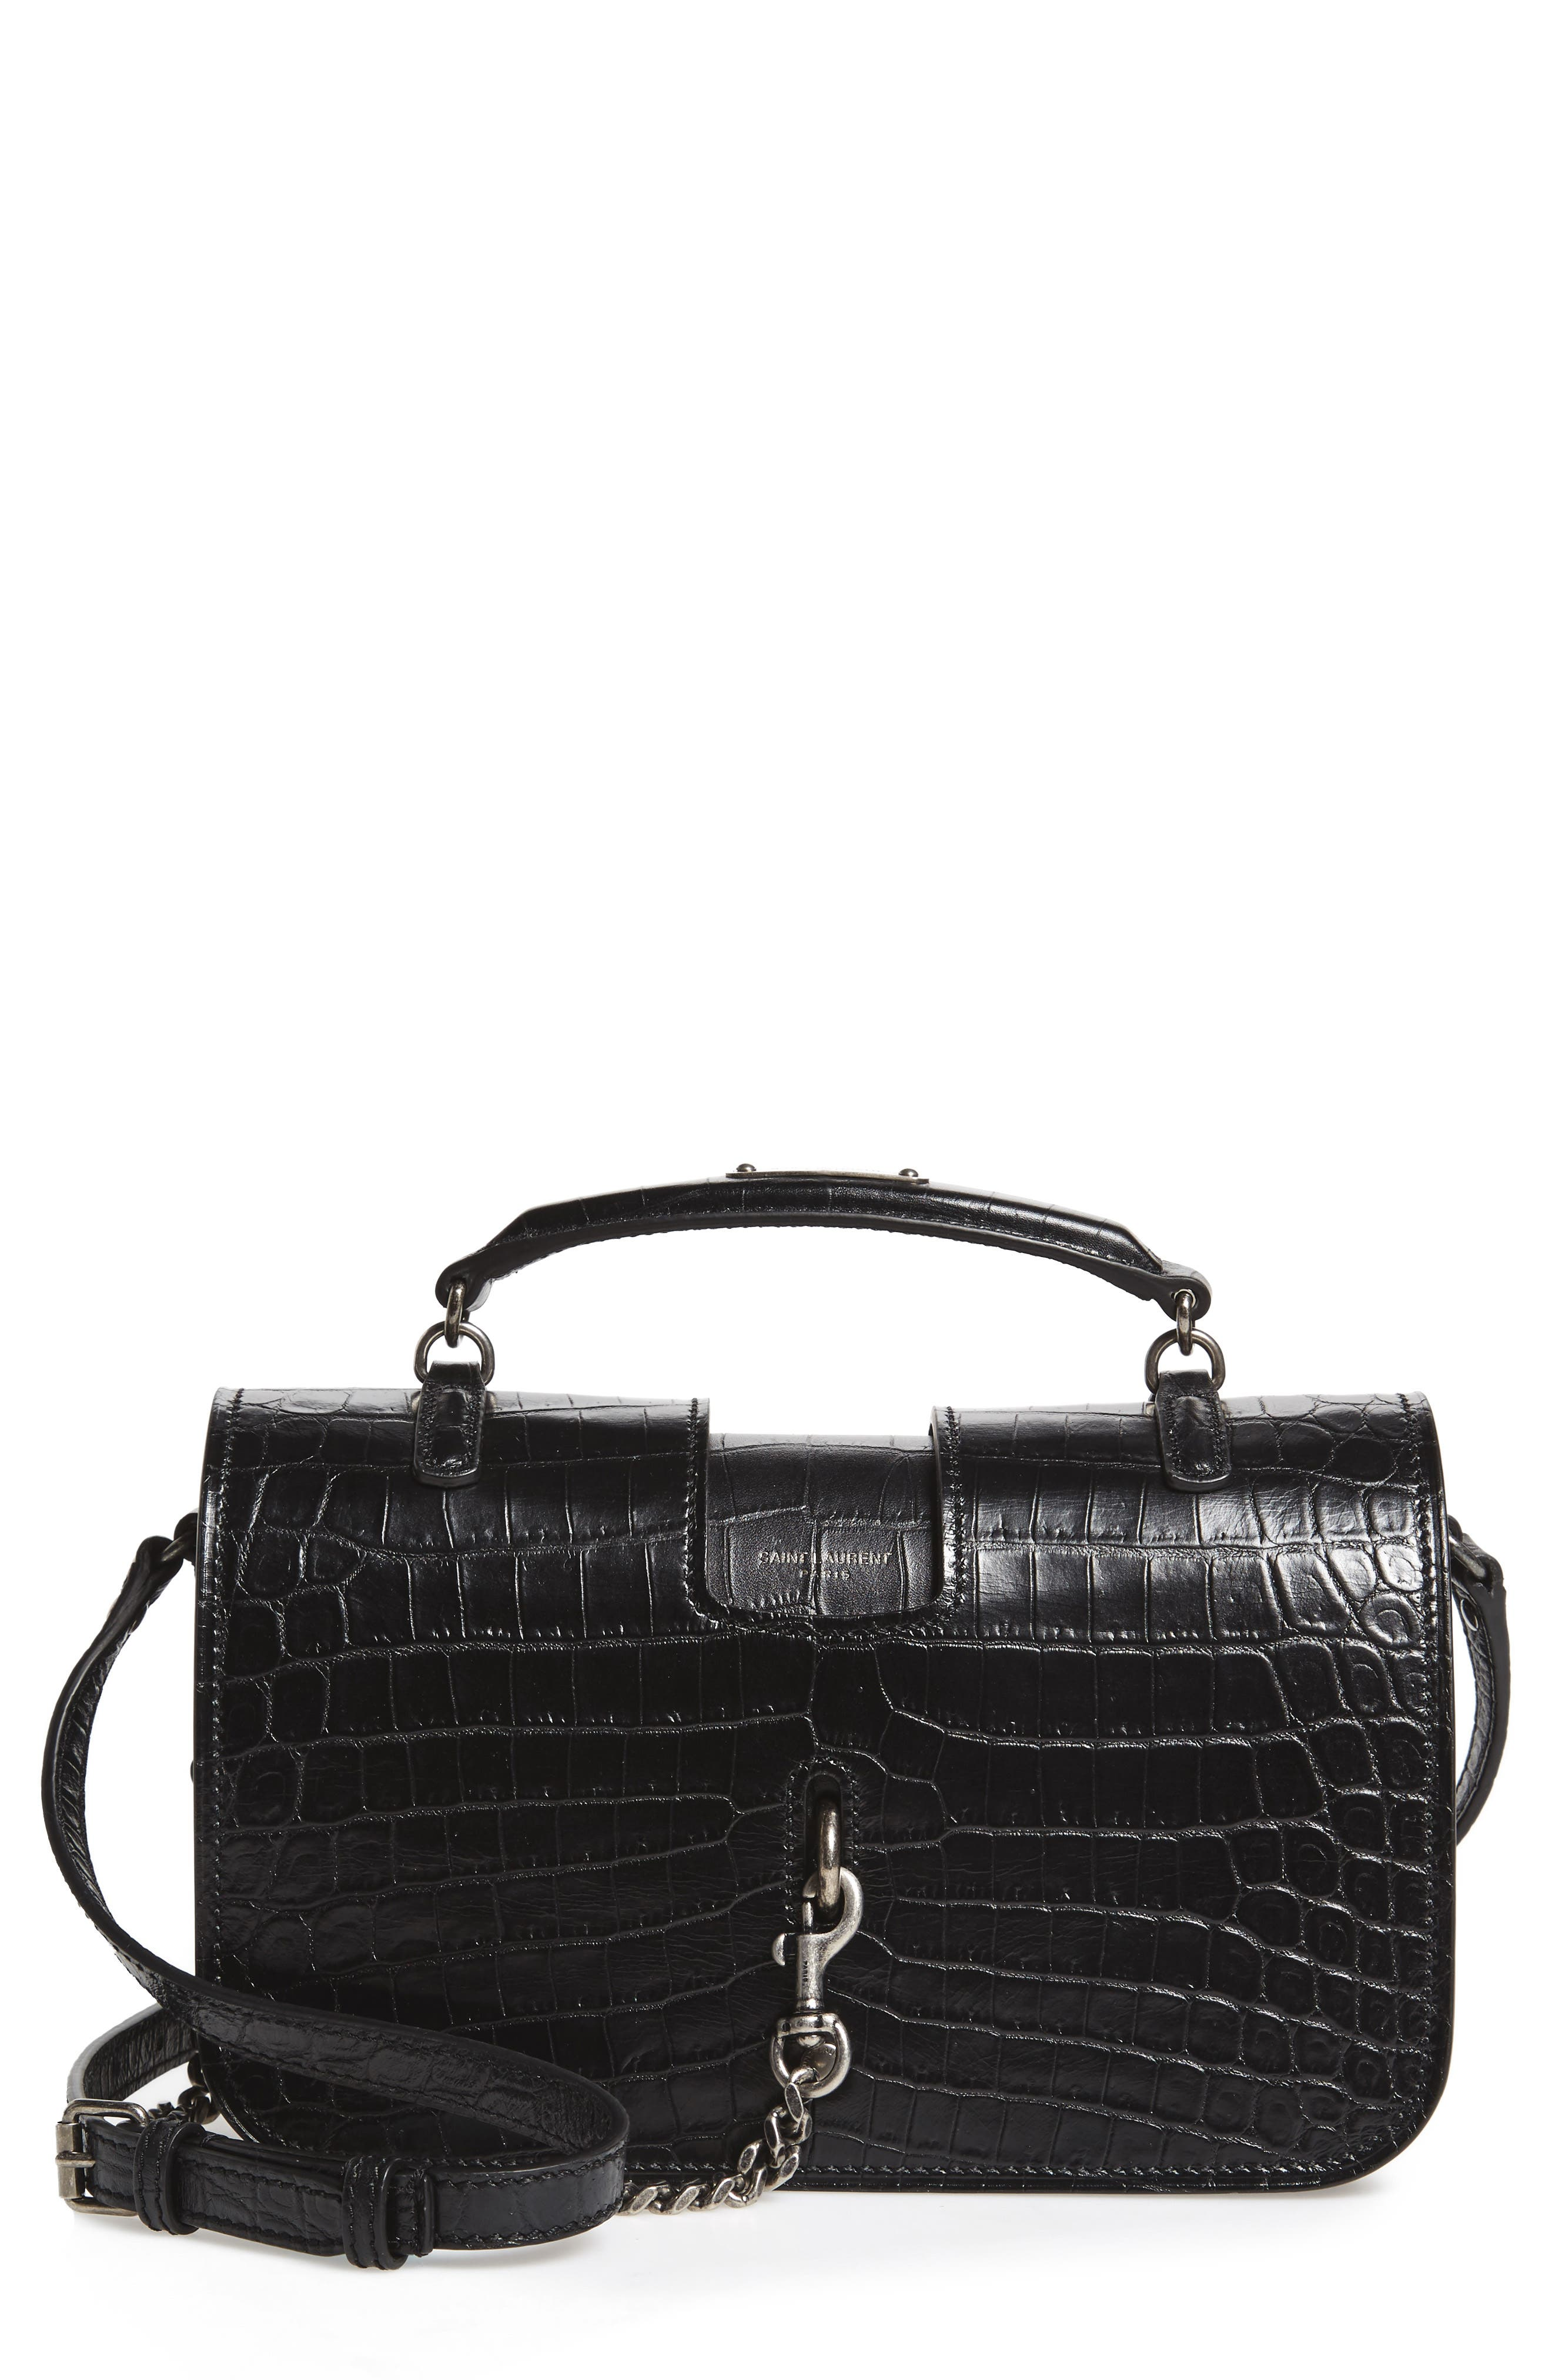 Saint Laurent Croc-Embossed Calfskin Satchel